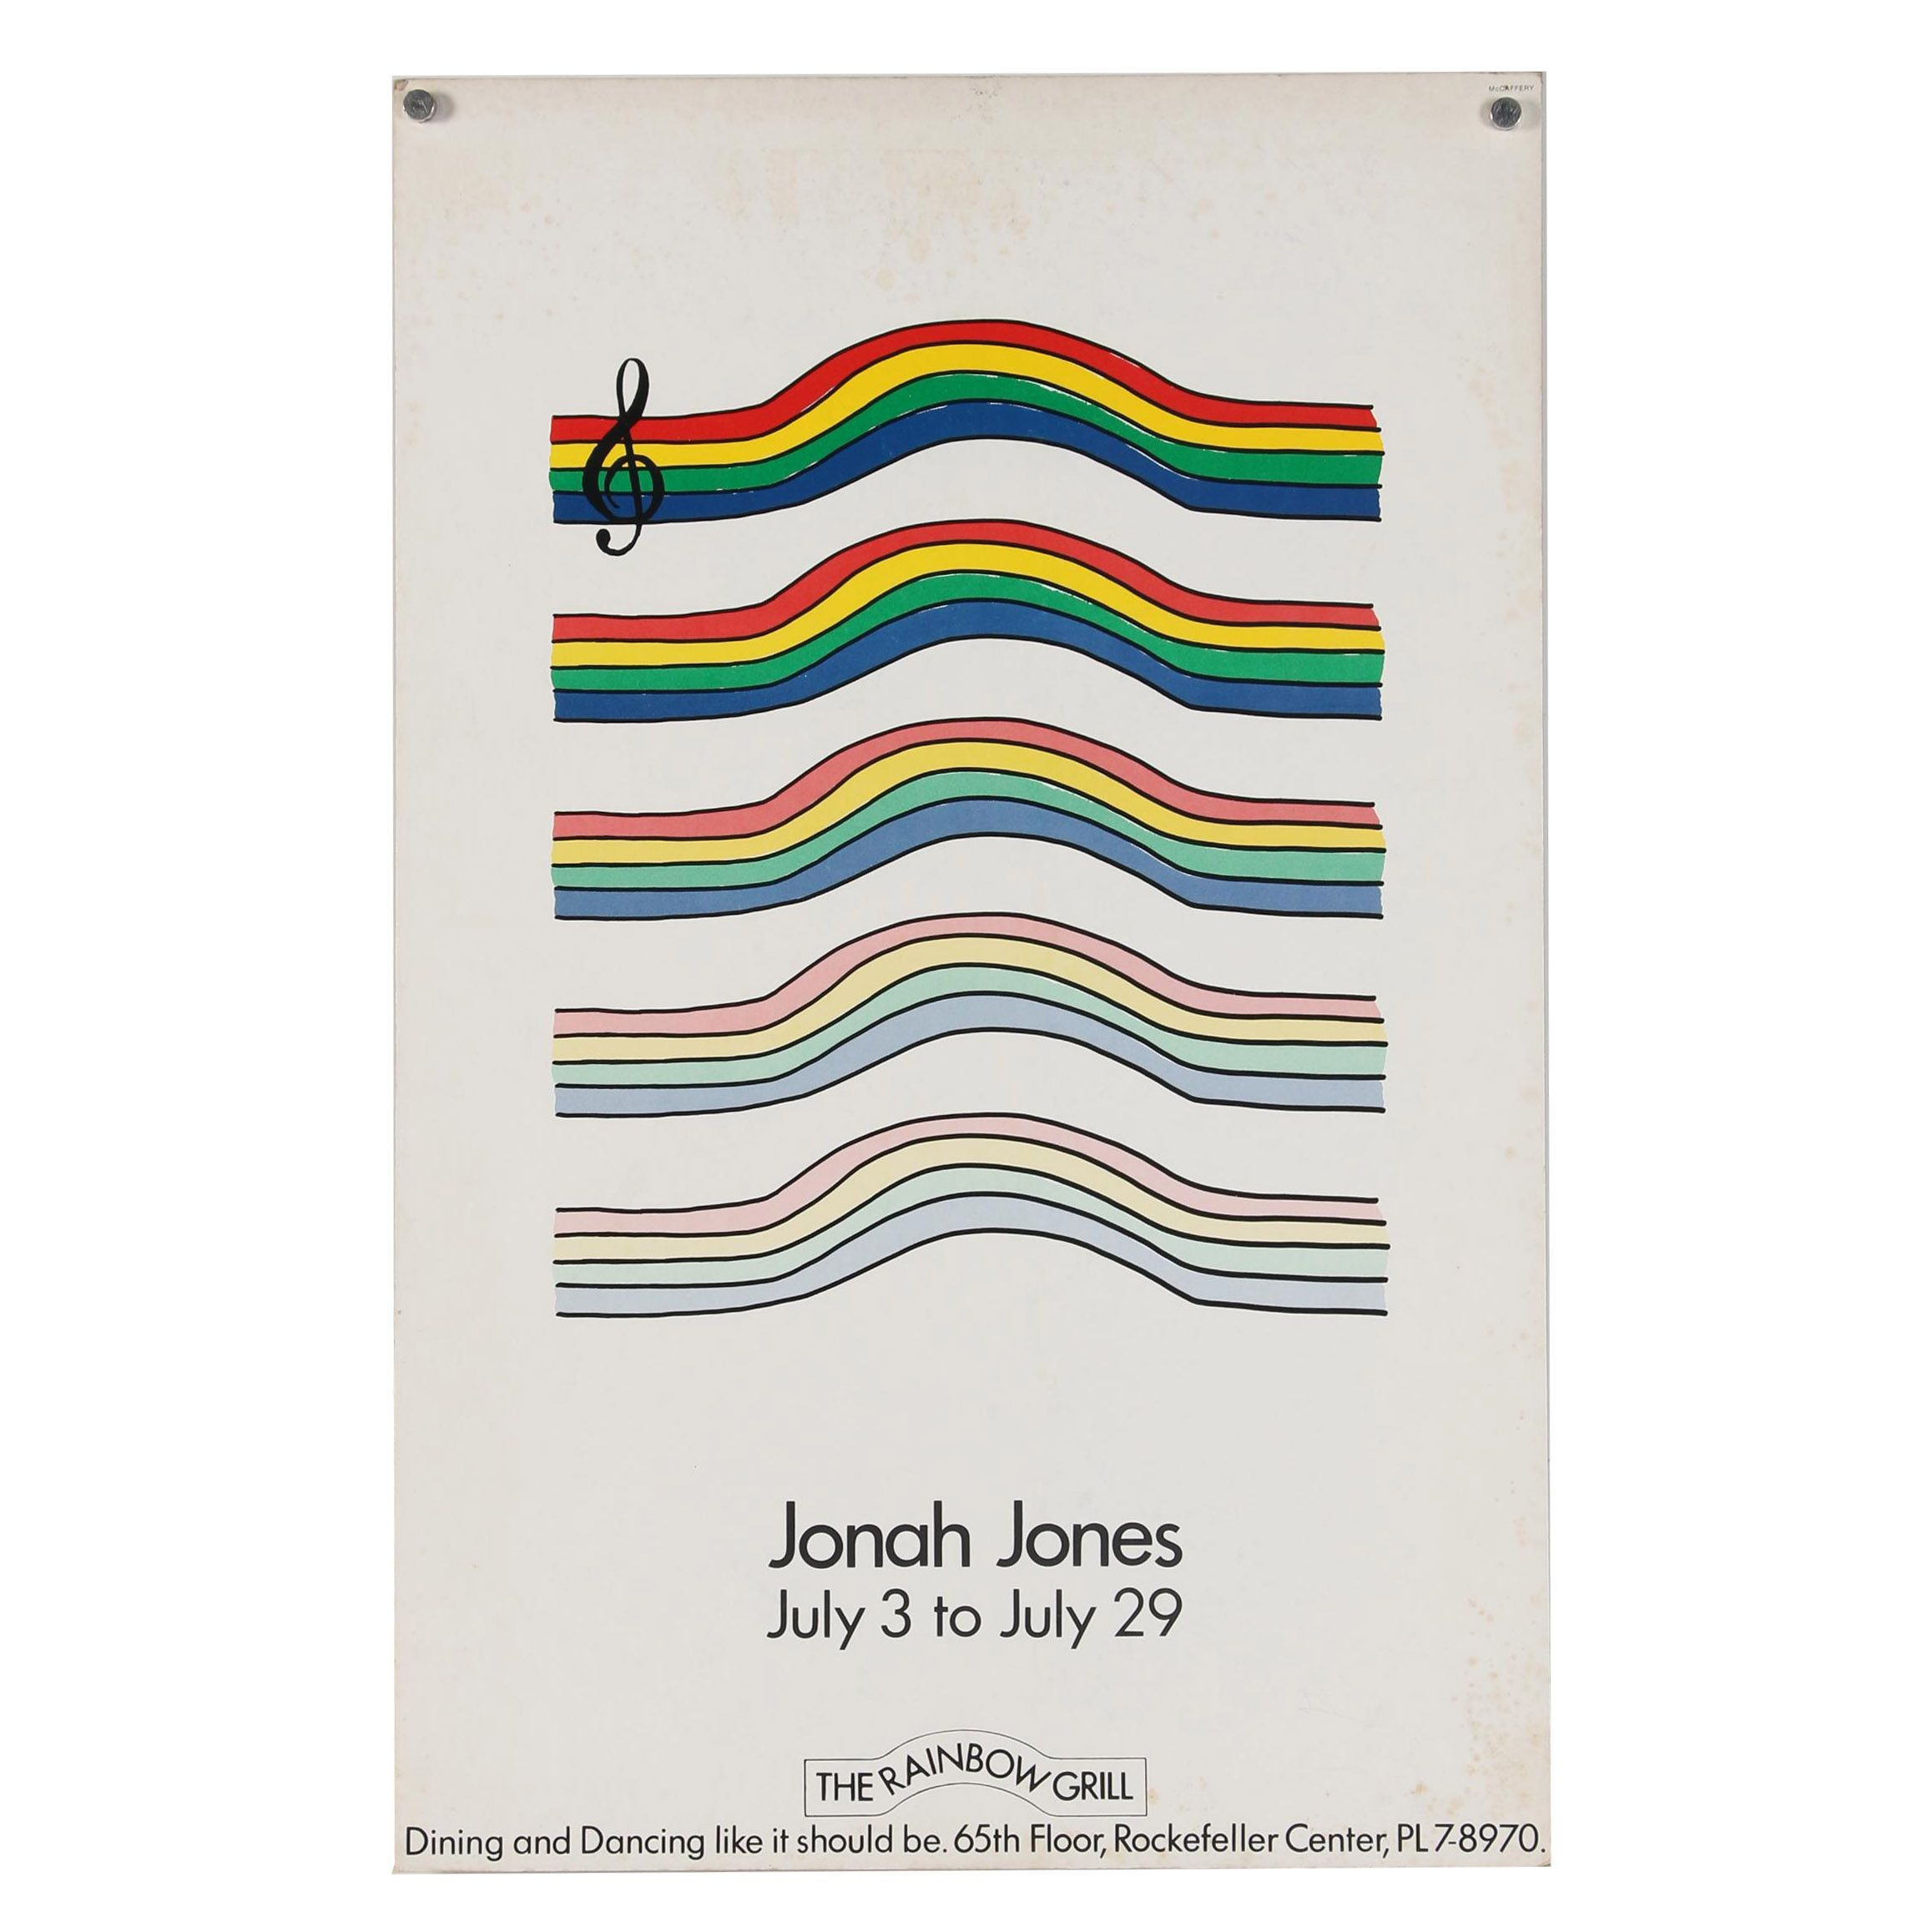 Jonah Jones Exhibition Poster at The Rainbow Grill